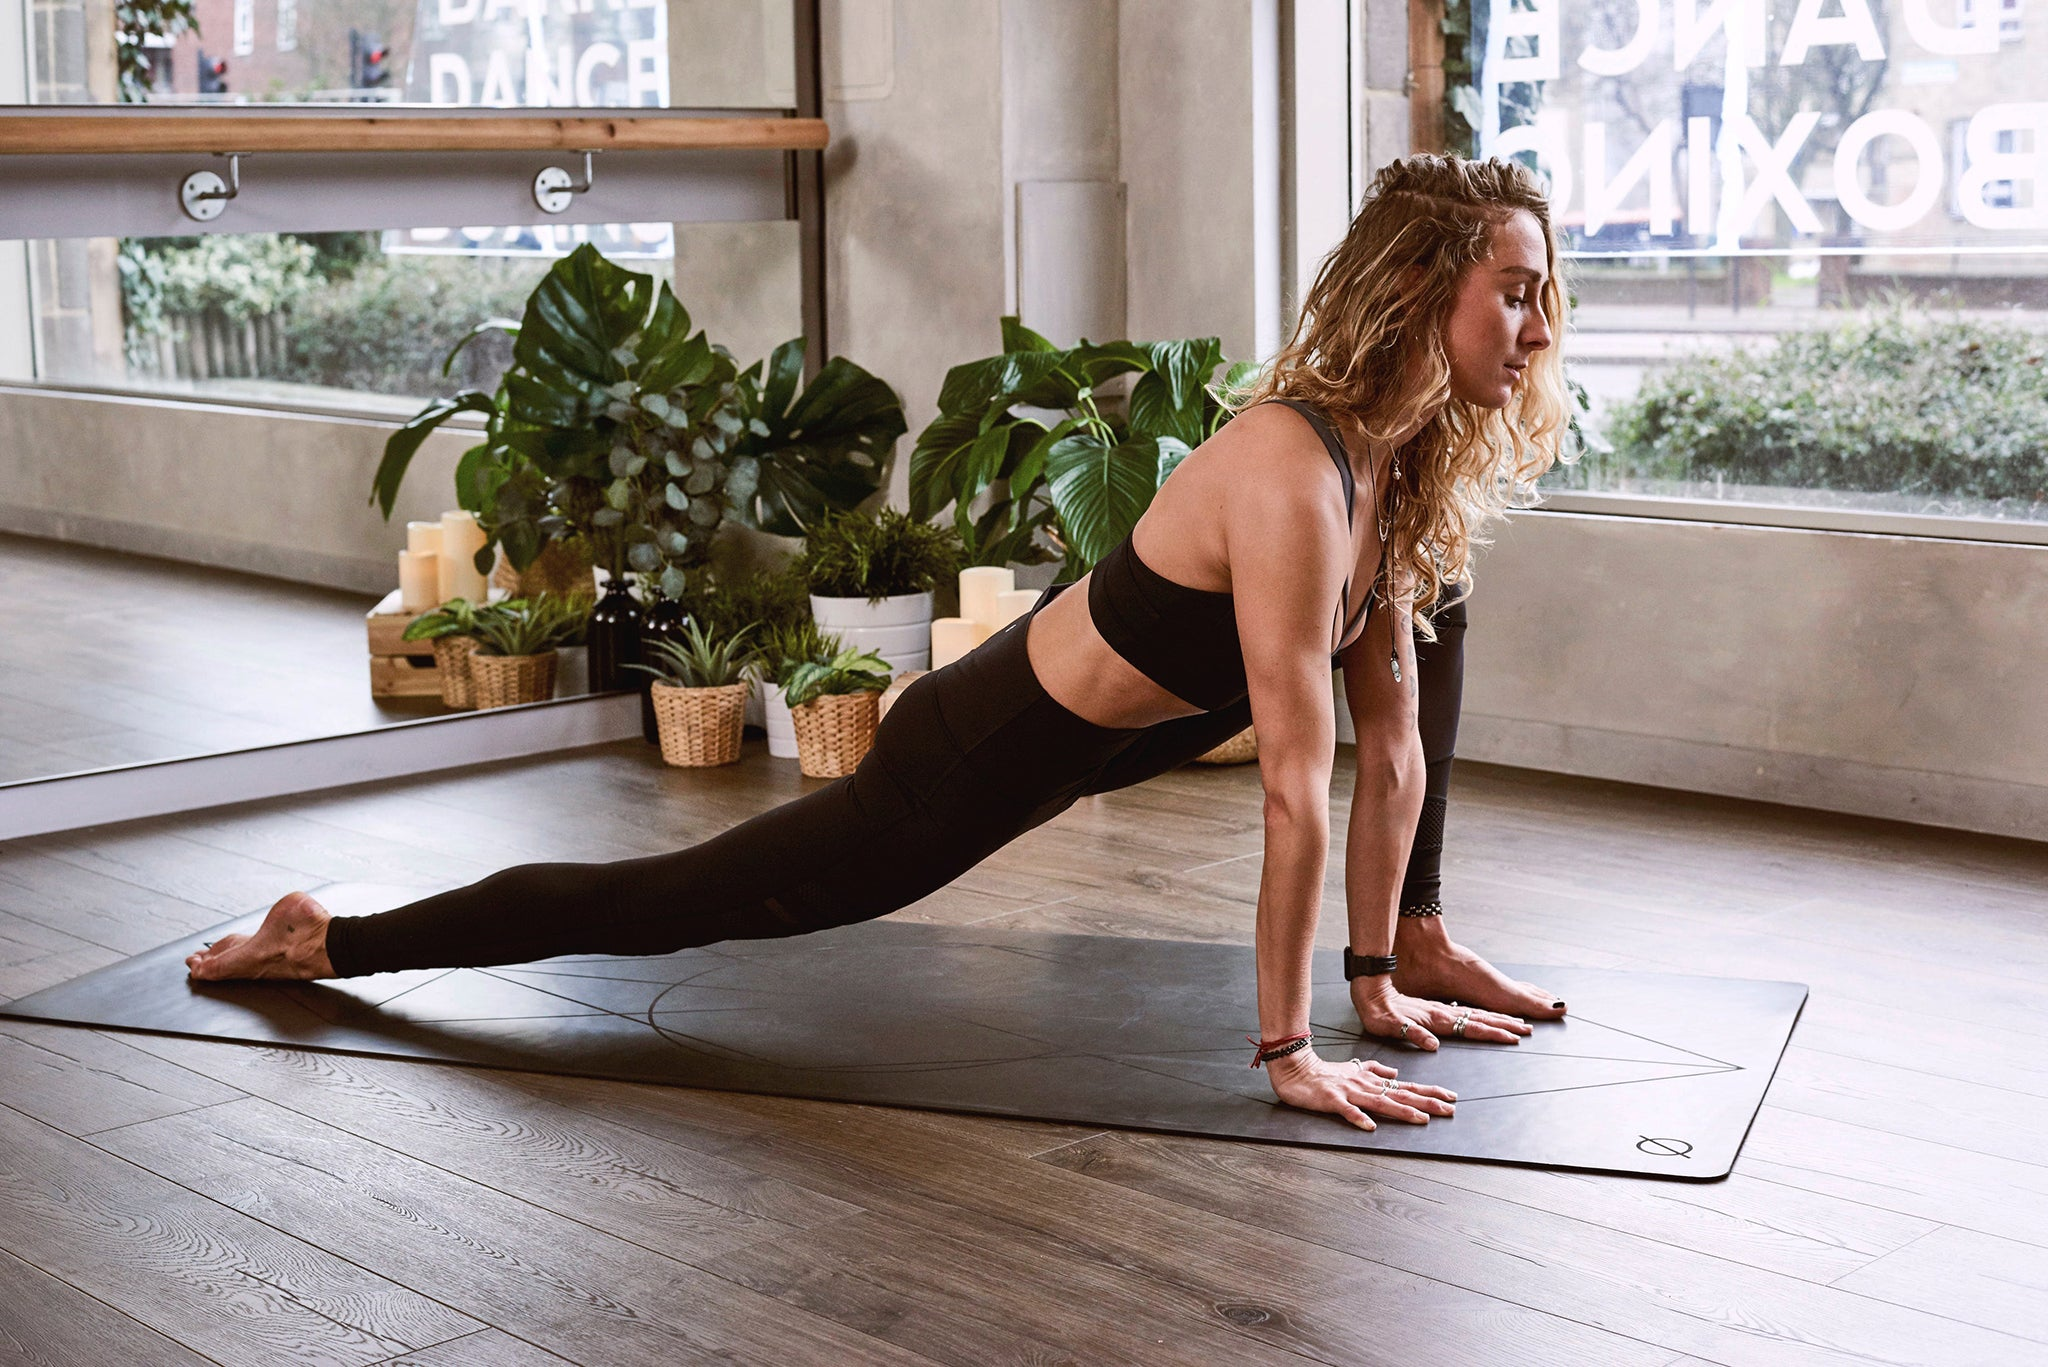 Image of woman doing yoga